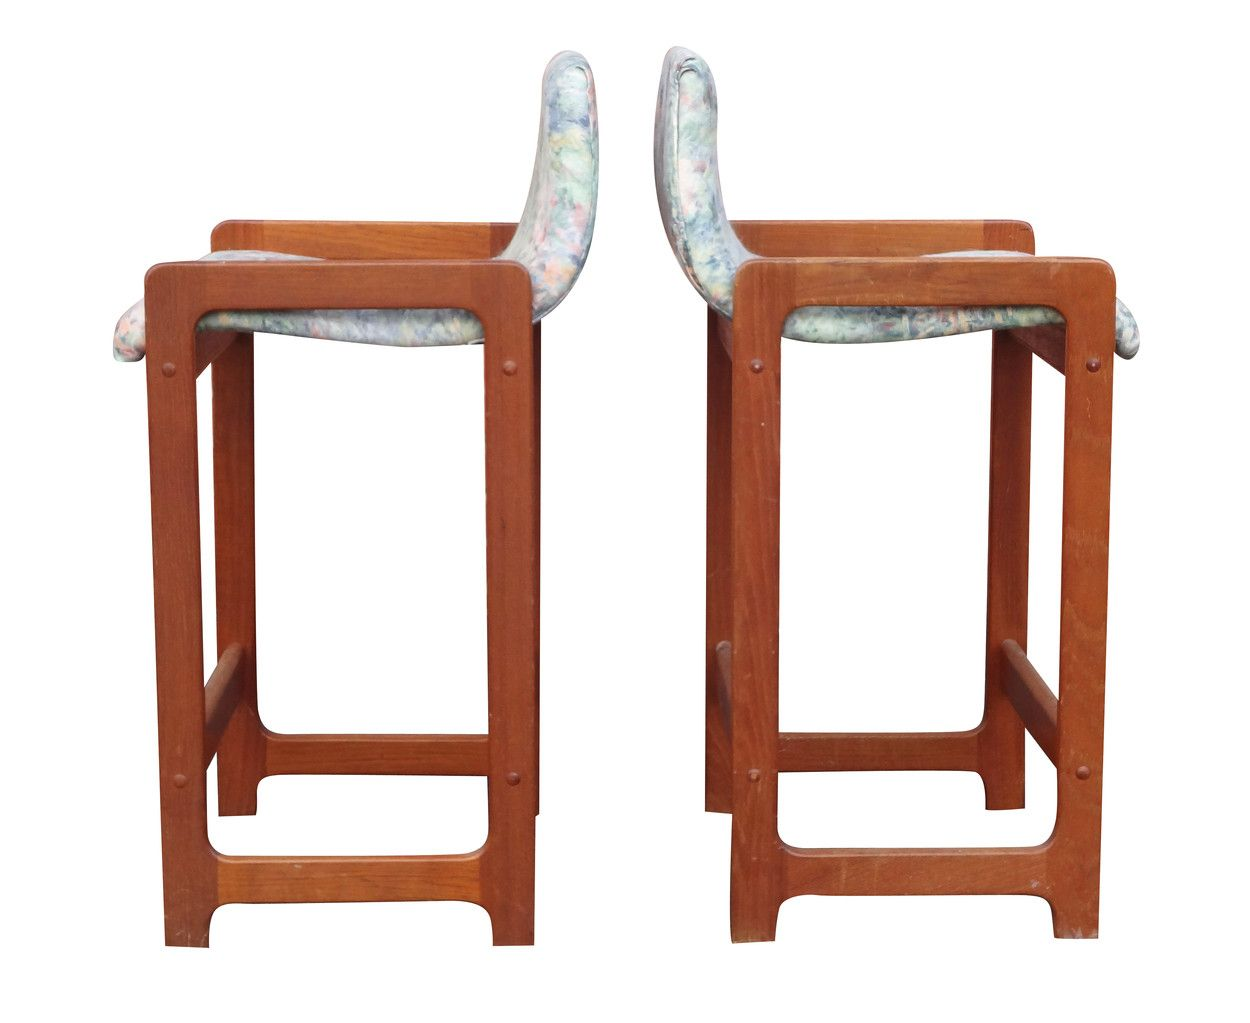 Barstools teak dixie nueve grand rapids michigans best mid century modern and decorator furniture store